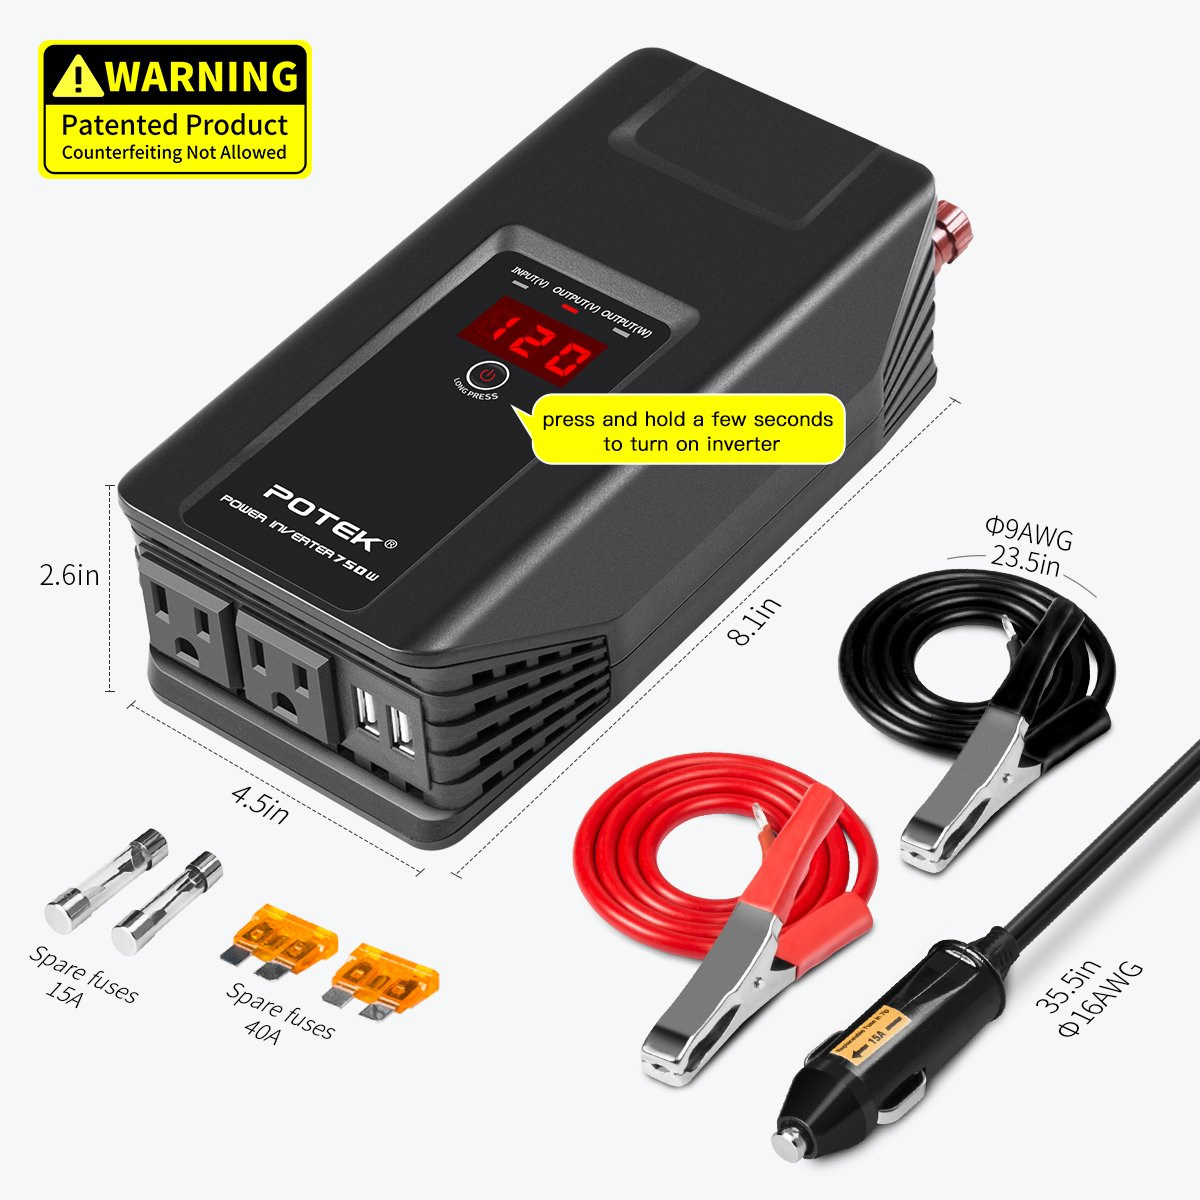 Smartphone,Camera and More Potek.Inc PI-750 Tablet POTEK 750W Power Inverter 12V DC to 110V AC Car Adapter with Two USB and AC Charging Ports for Laptop